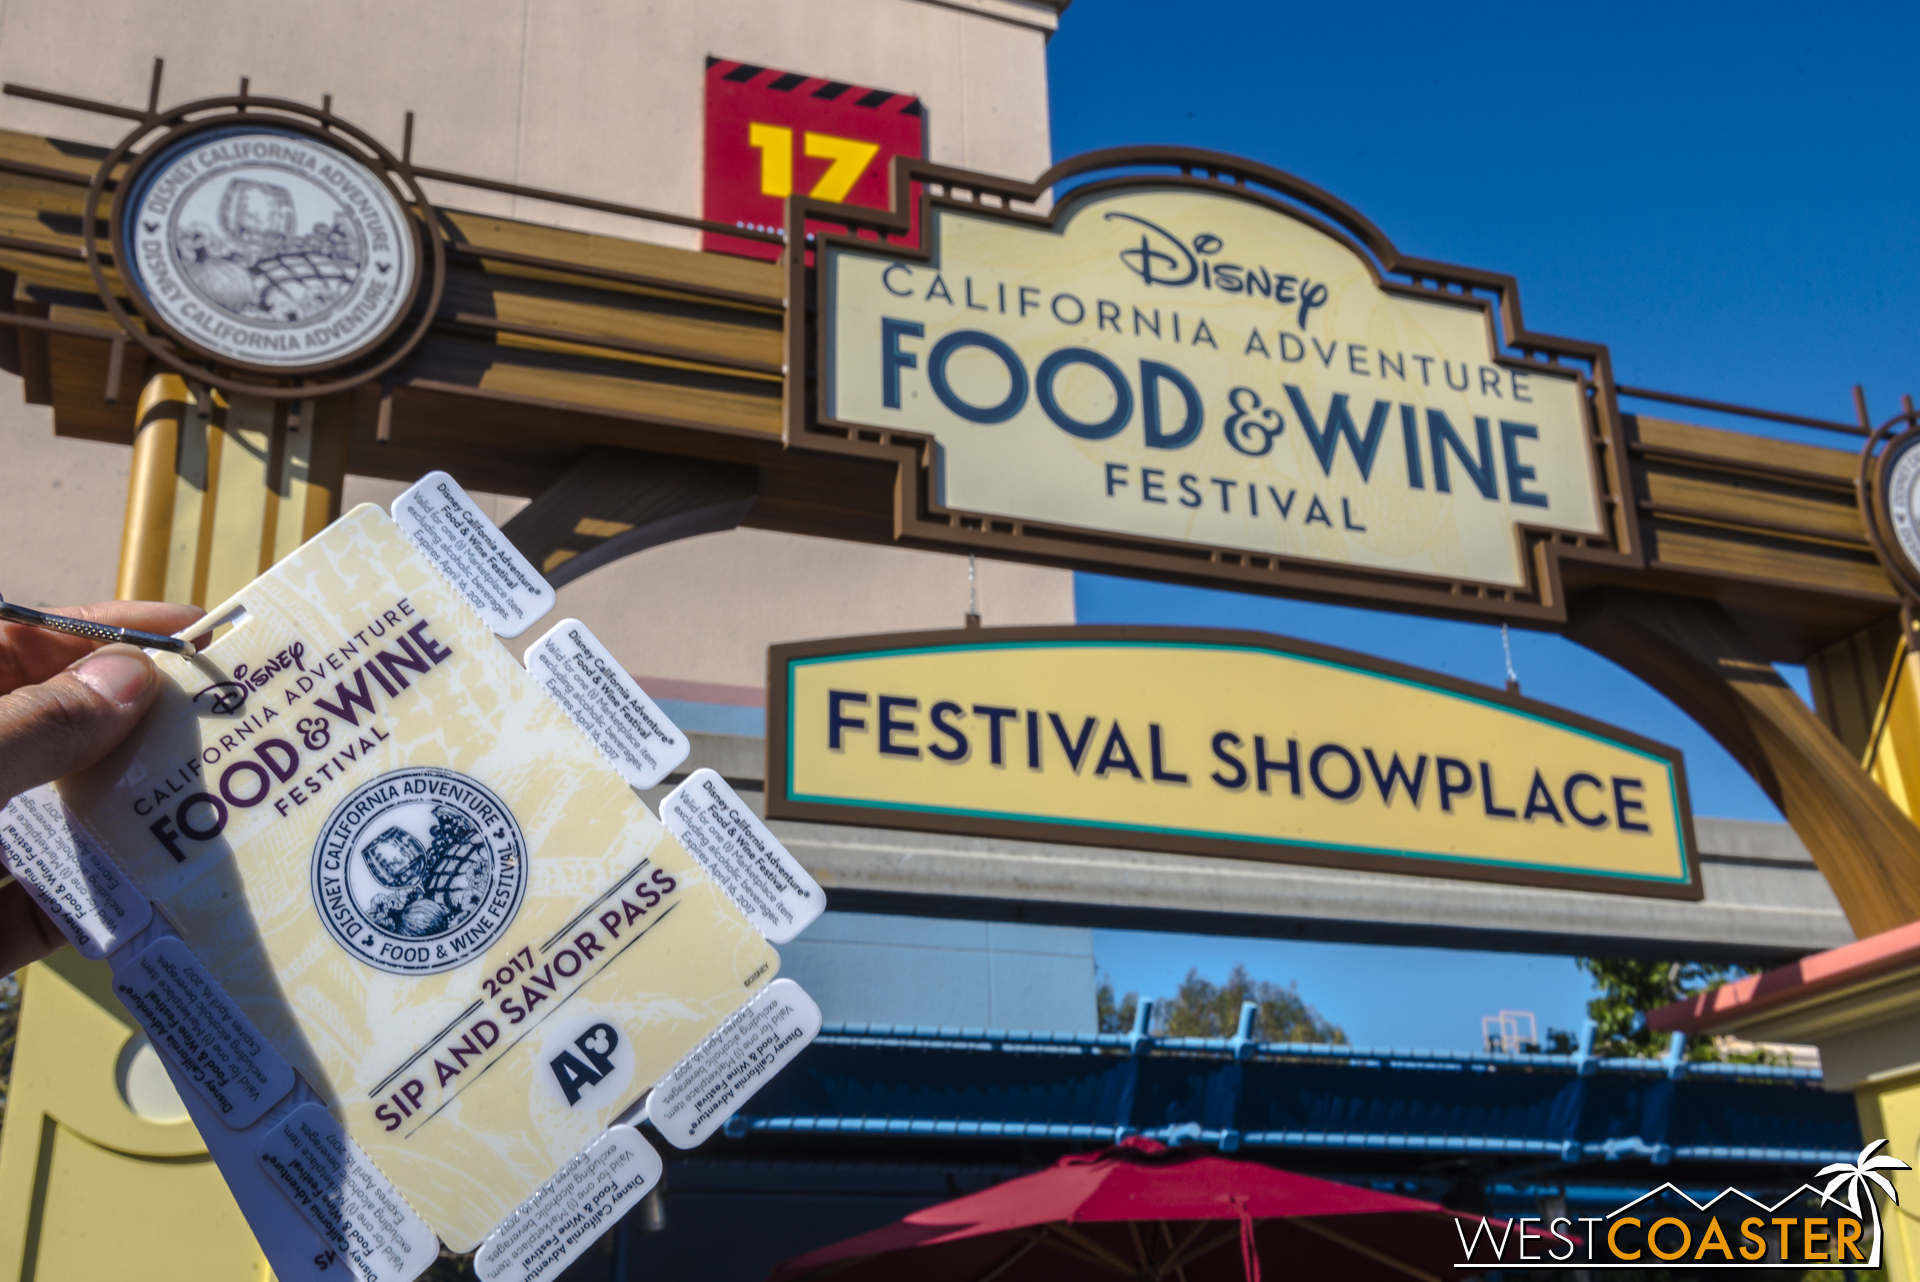 """Back this year is the Annual Passholder tasting pass, called the """"Sip and Savor Pass"""" this year, which effectively provides a discounted way of purchasing food and non-alcoholic beverage items at the Festival Marketplace. It is $45 for 8 tabs, which means 8 dishes. This is more expensive than last year's $42 pass but a better value, because last year's pass was only good for 6 dishes. It also means that, doing the math, it's worth it to spend on food items $5.75 or more, if you divide the total cost of the pass by 8. There are plenty of dishes at that mark or higher, but I wouldn't use this on, say, desserts and drinks. In addition, the pass does not have to be used all in one day. It is valid through April 16, so guests who can't use up all the tabs on one visit can come again by that date and still take advantage."""